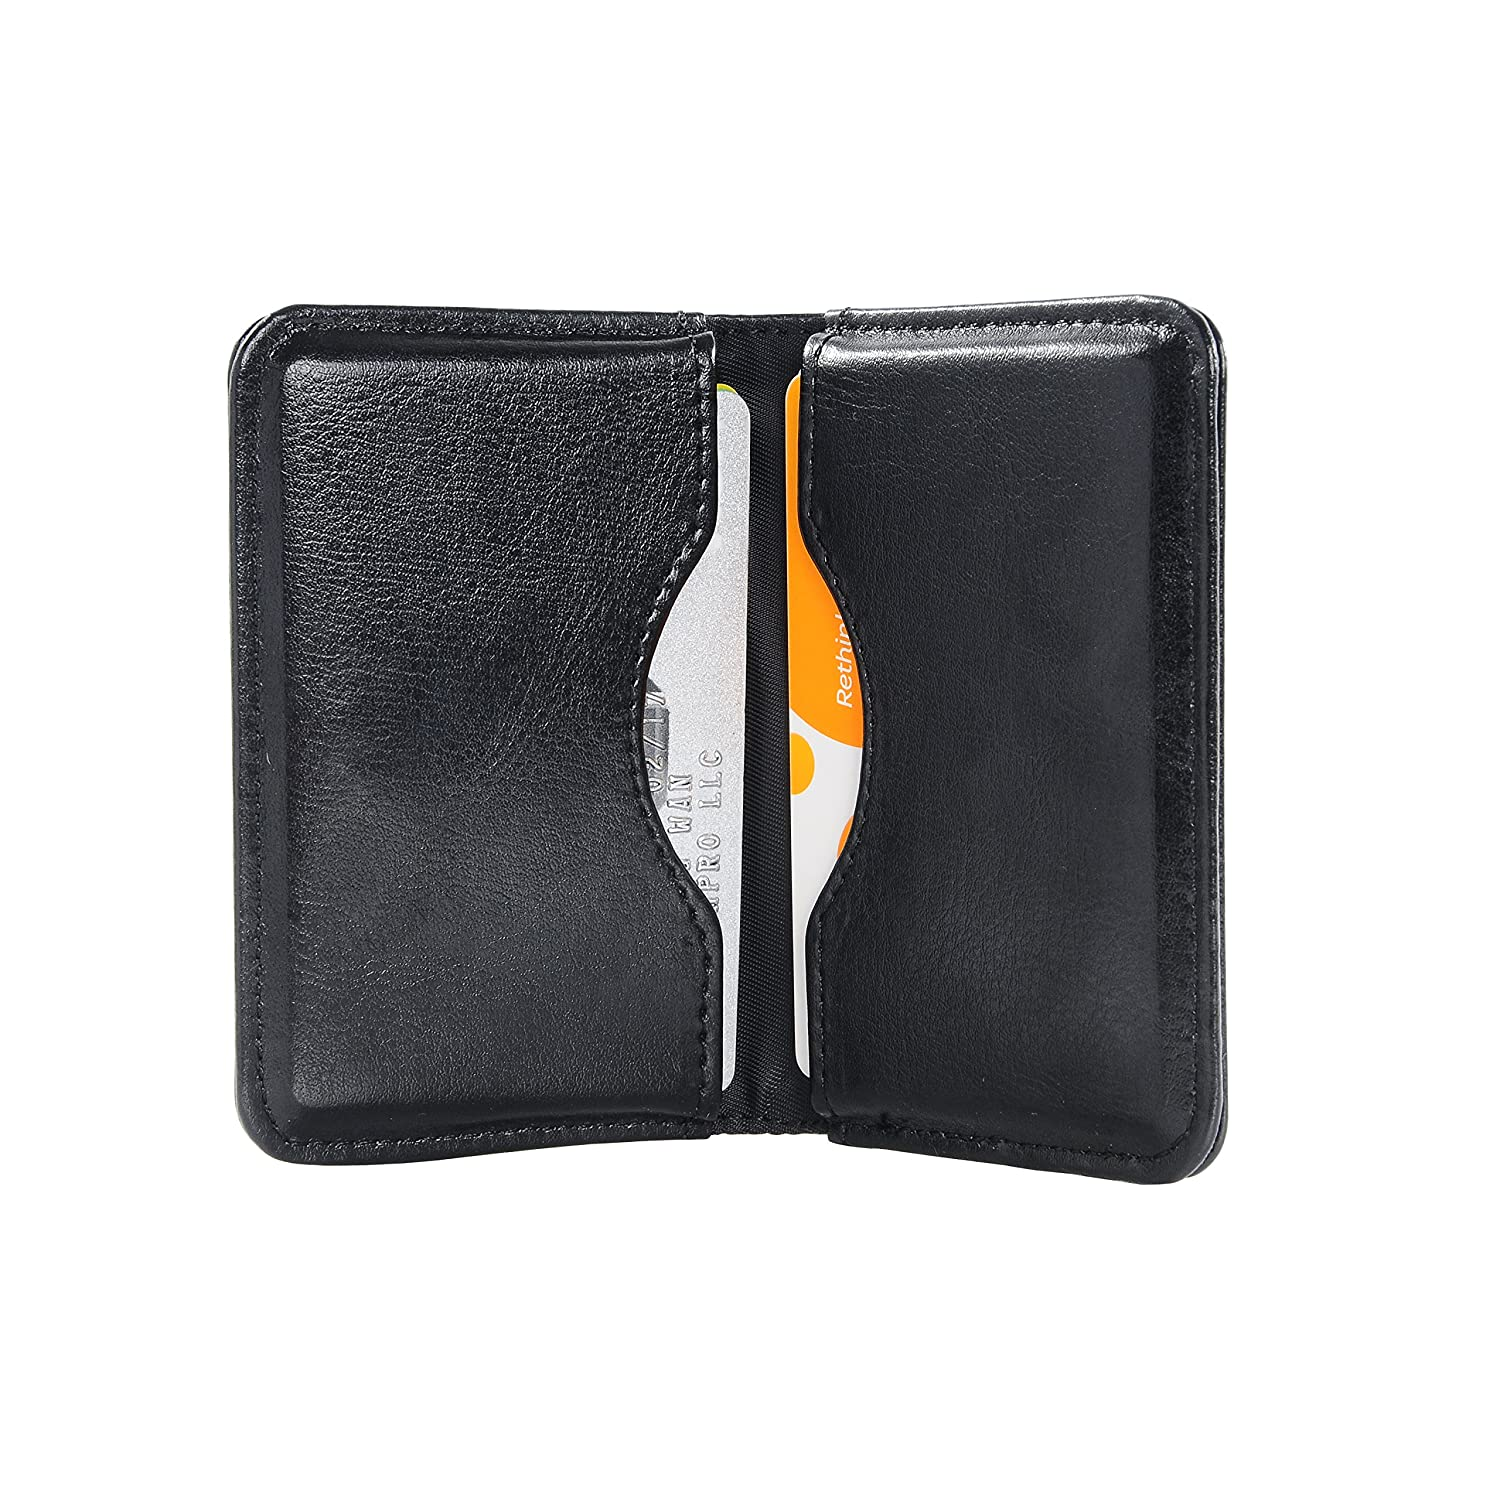 Business Card Holders Amazon